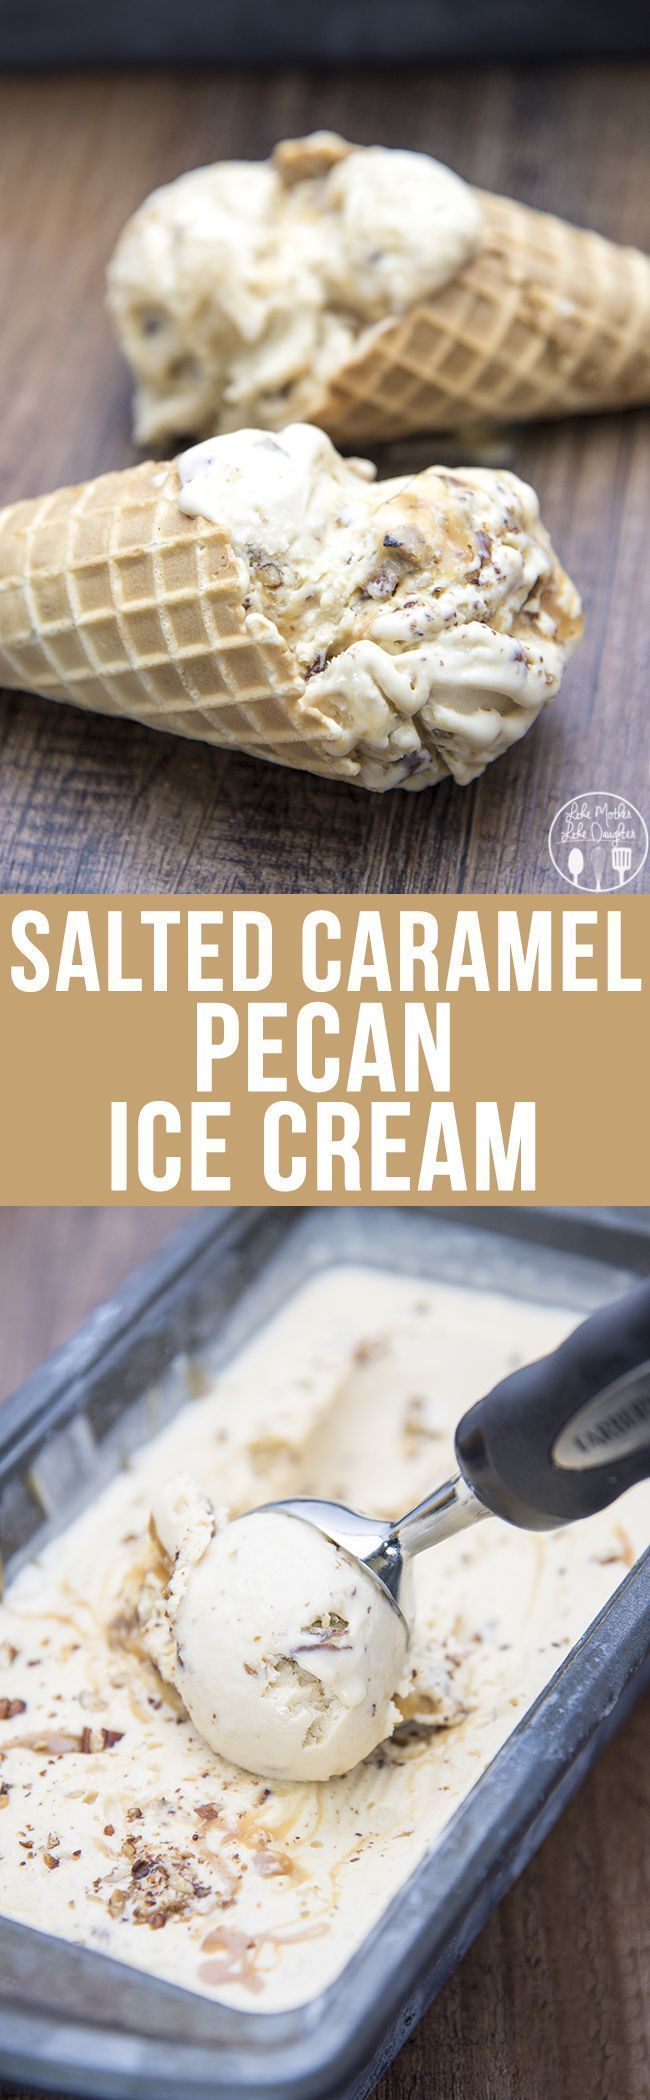 Salted Caramel Pecan Ice Cream -I would make it with almonds